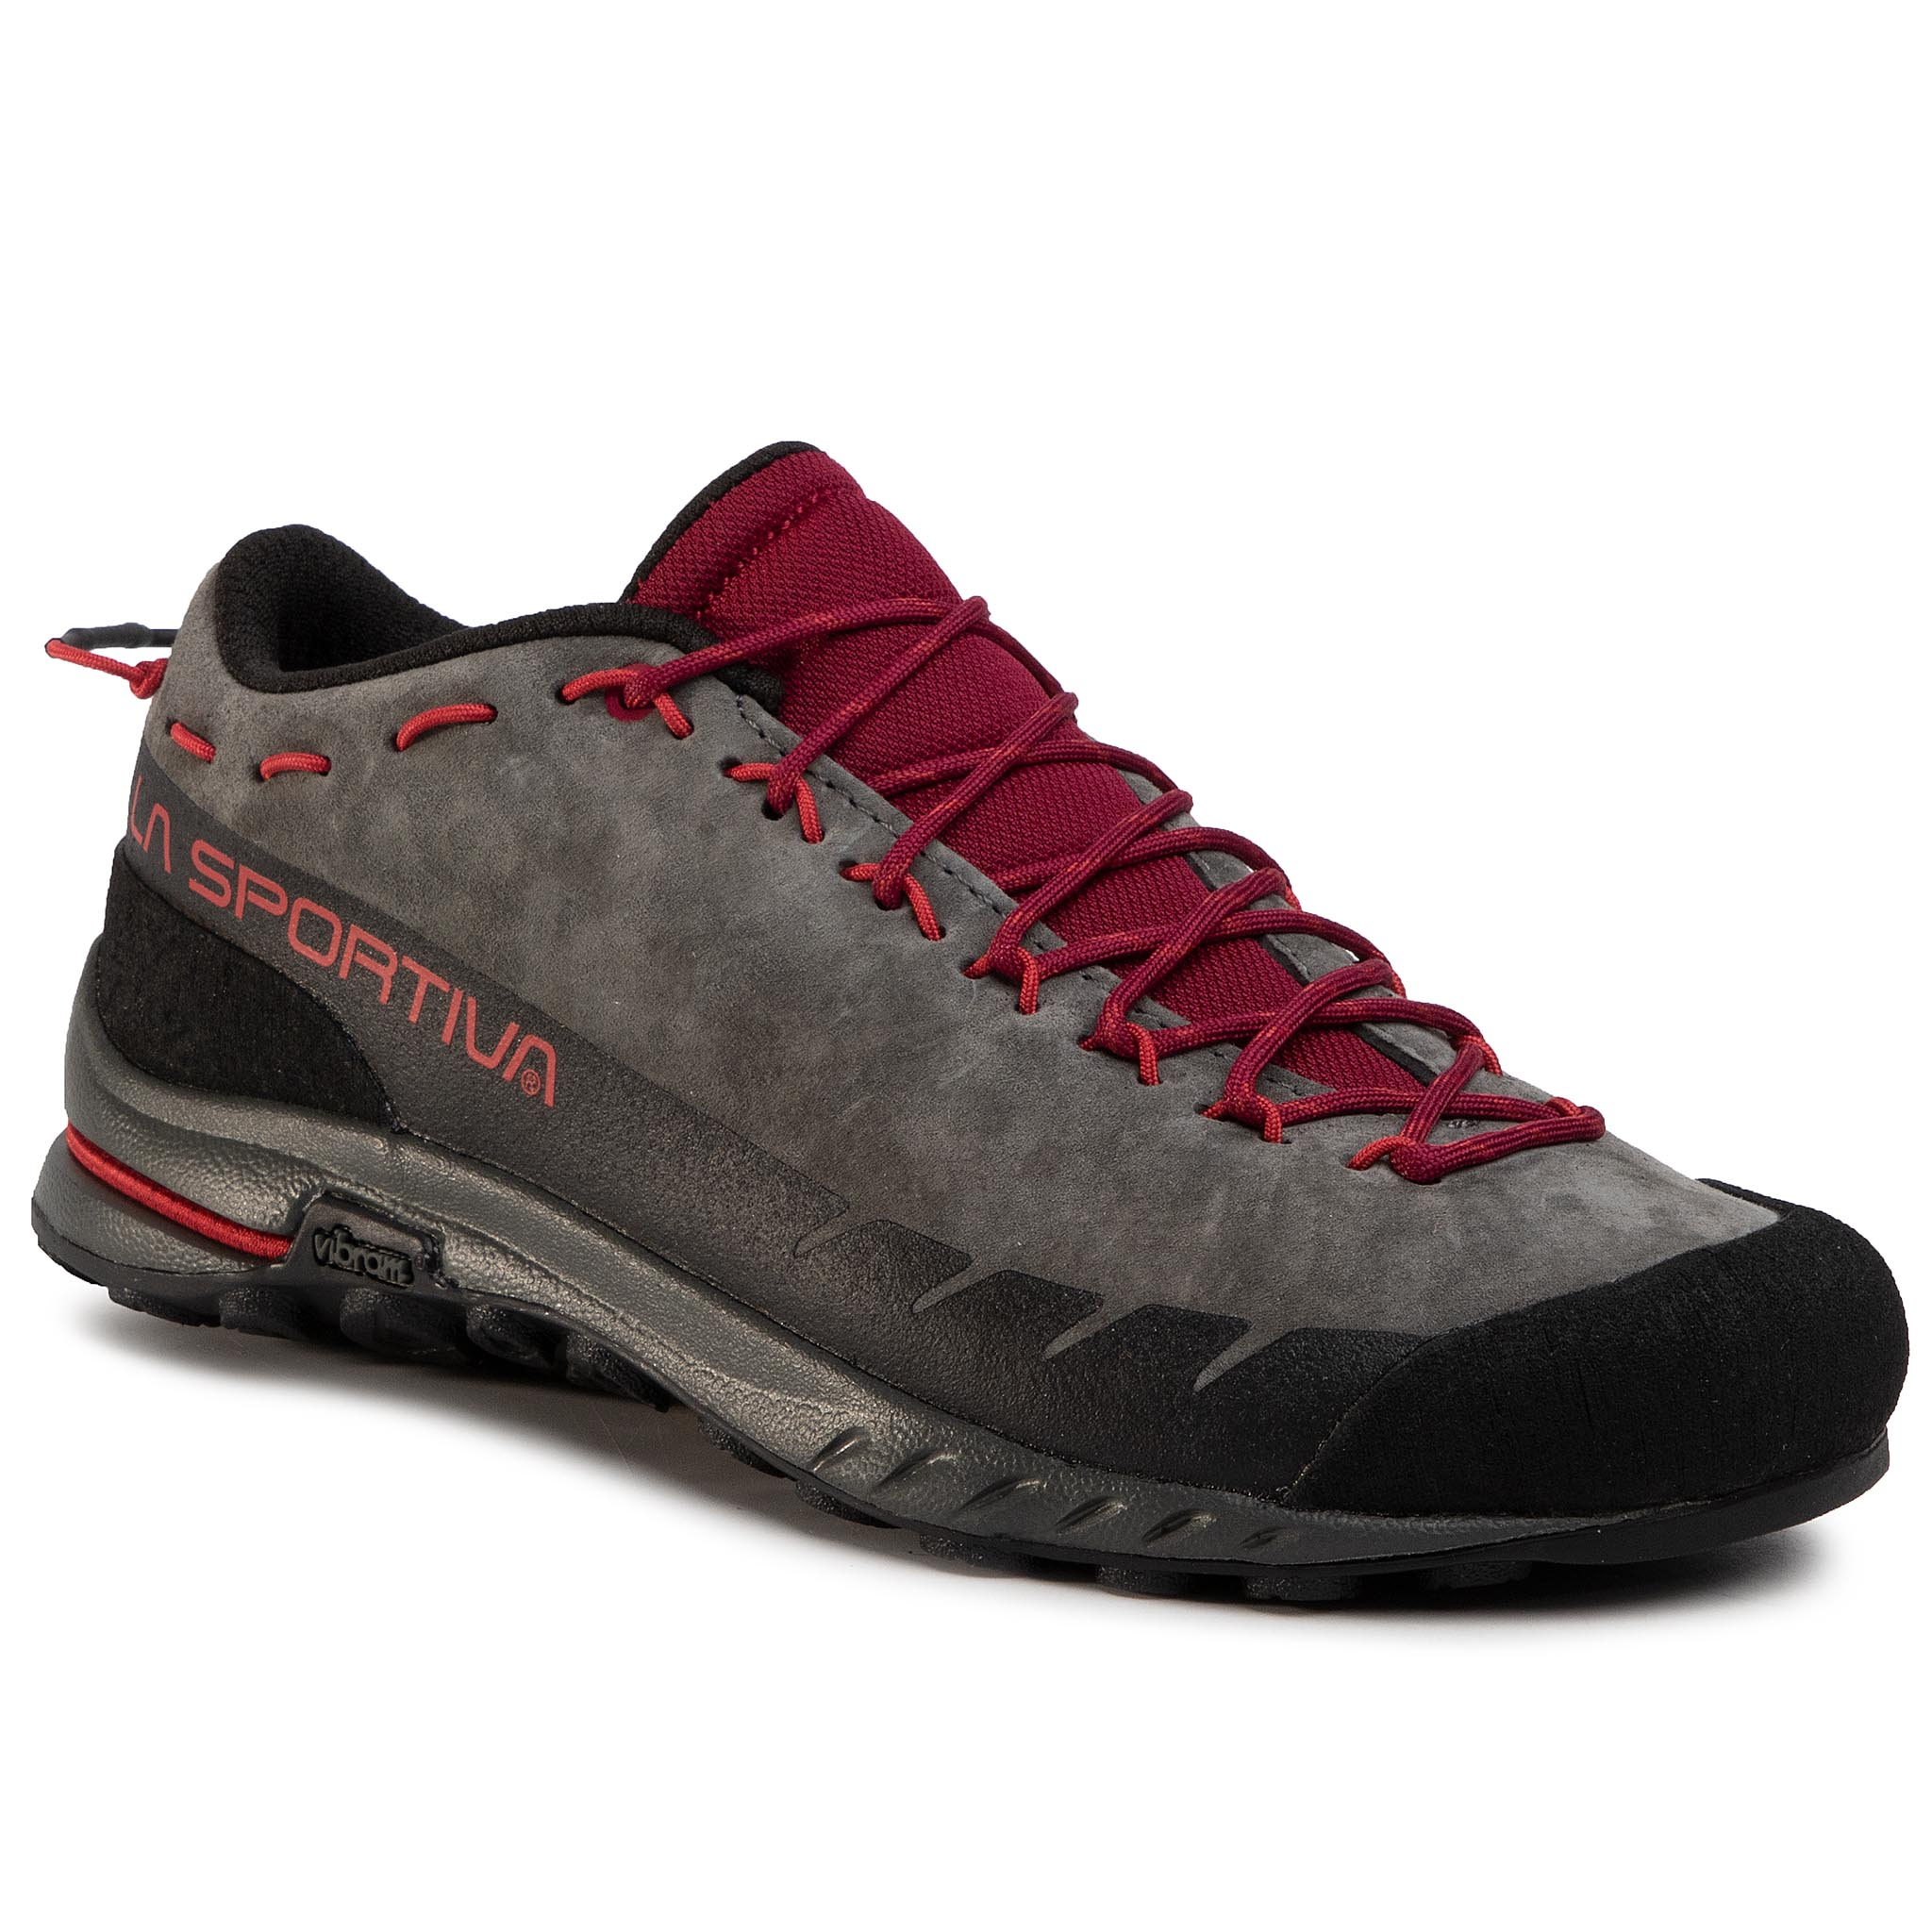 Trekkings La Sportiva - Tx2 27h900310 Carbon Beet imagine epantofi.ro 2021